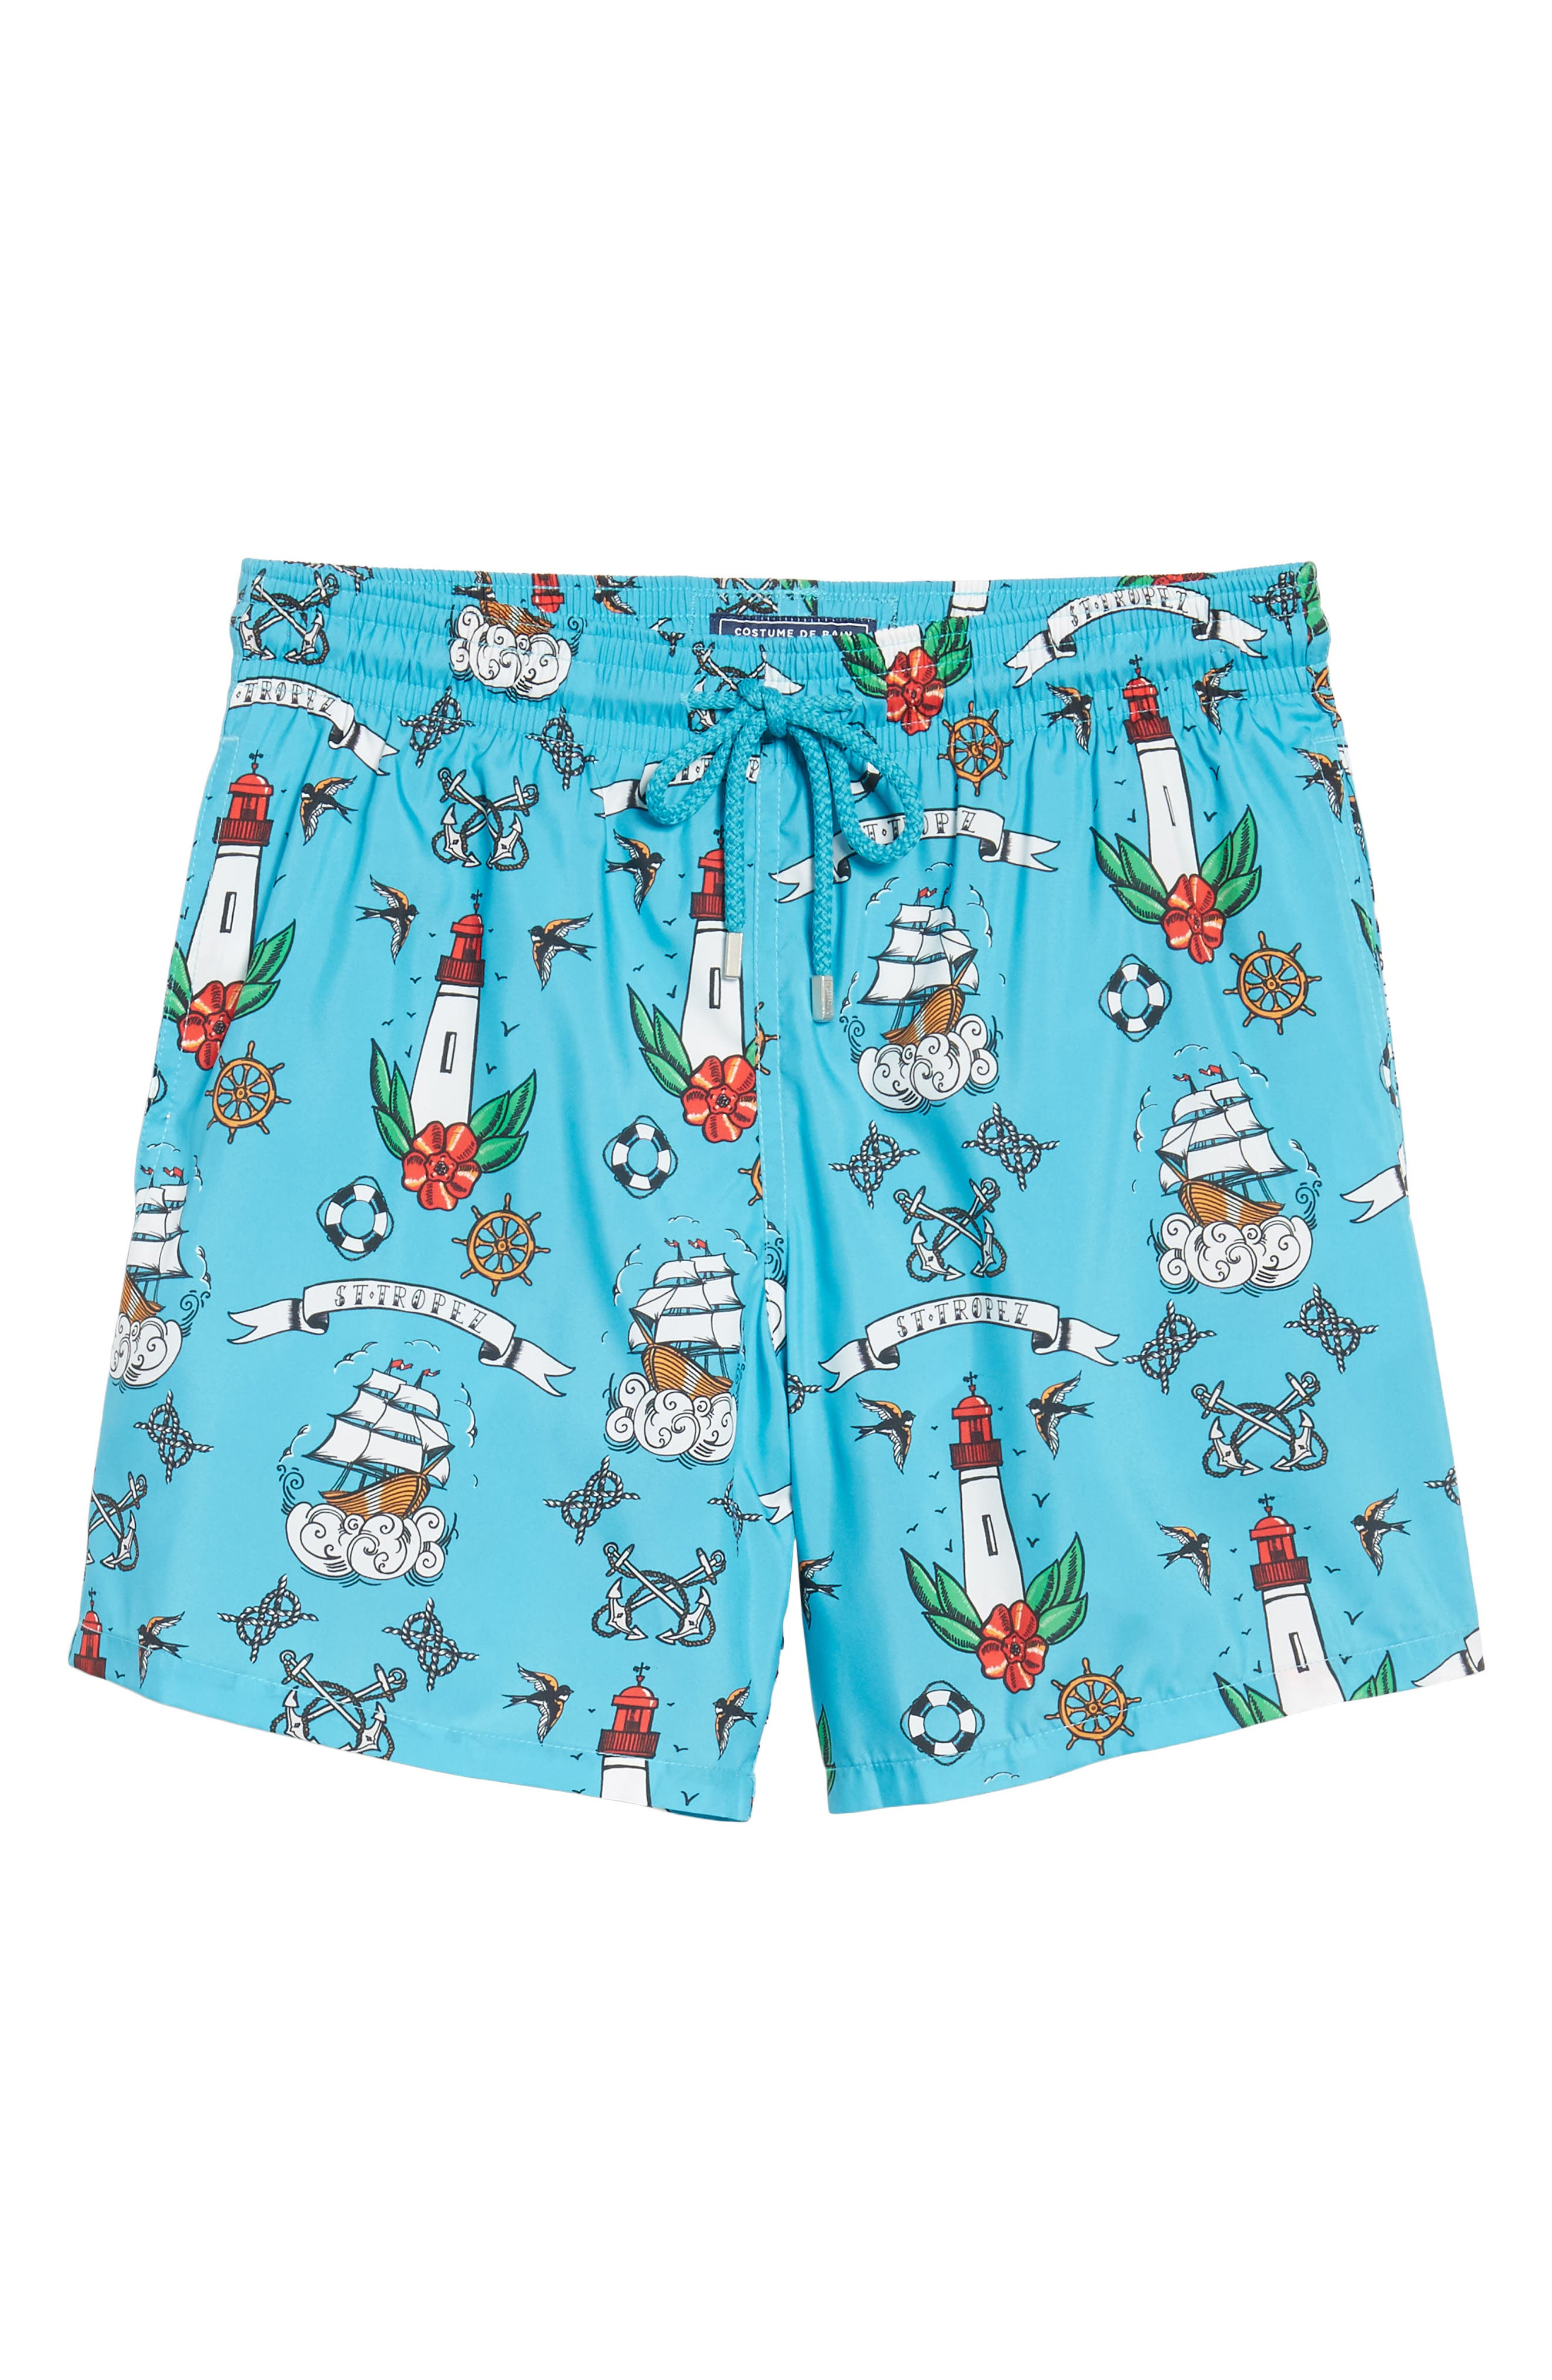 Tattoo Sashimi Swim Trunks,                             Alternate thumbnail 6, color,